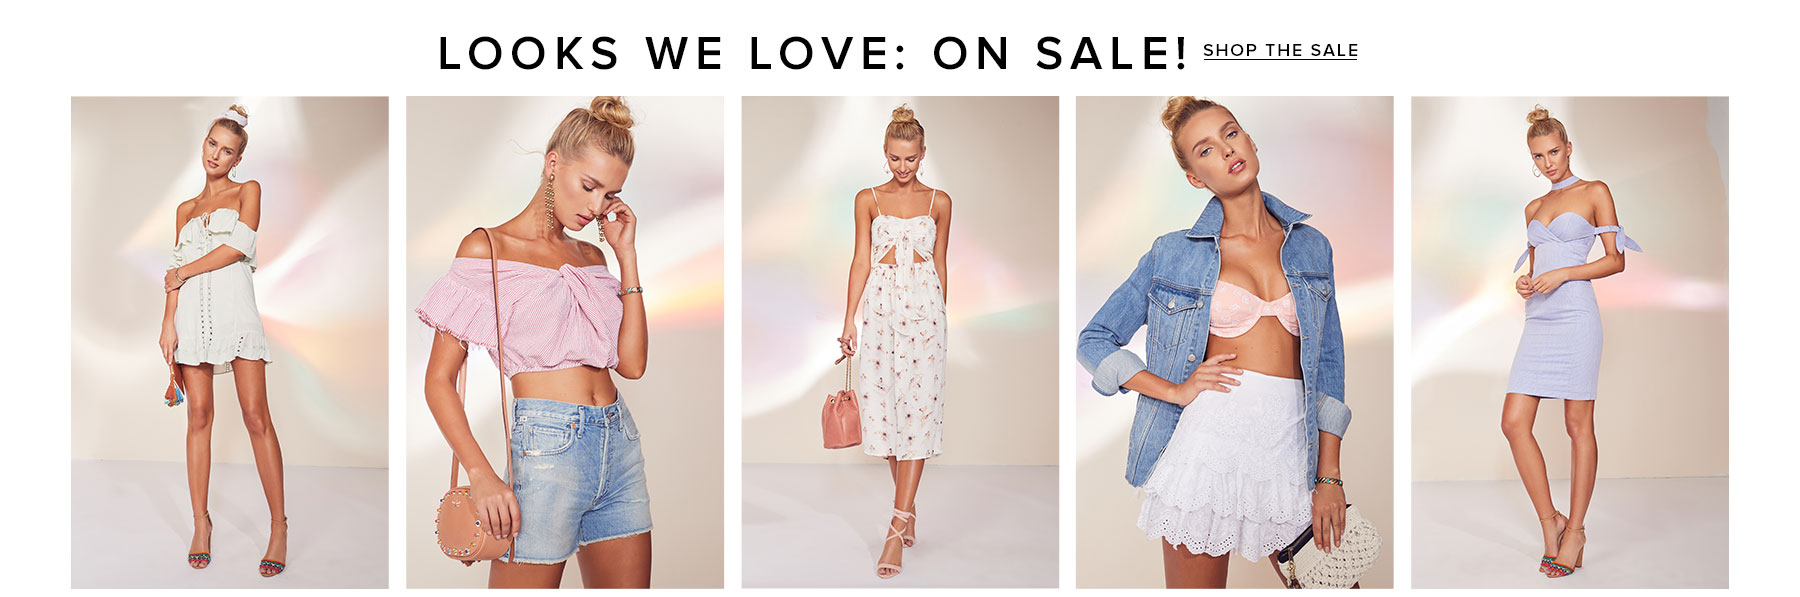 Looks We Love: On Sale. Up to 50% off the sexiest summer styles. Shop the Sale.